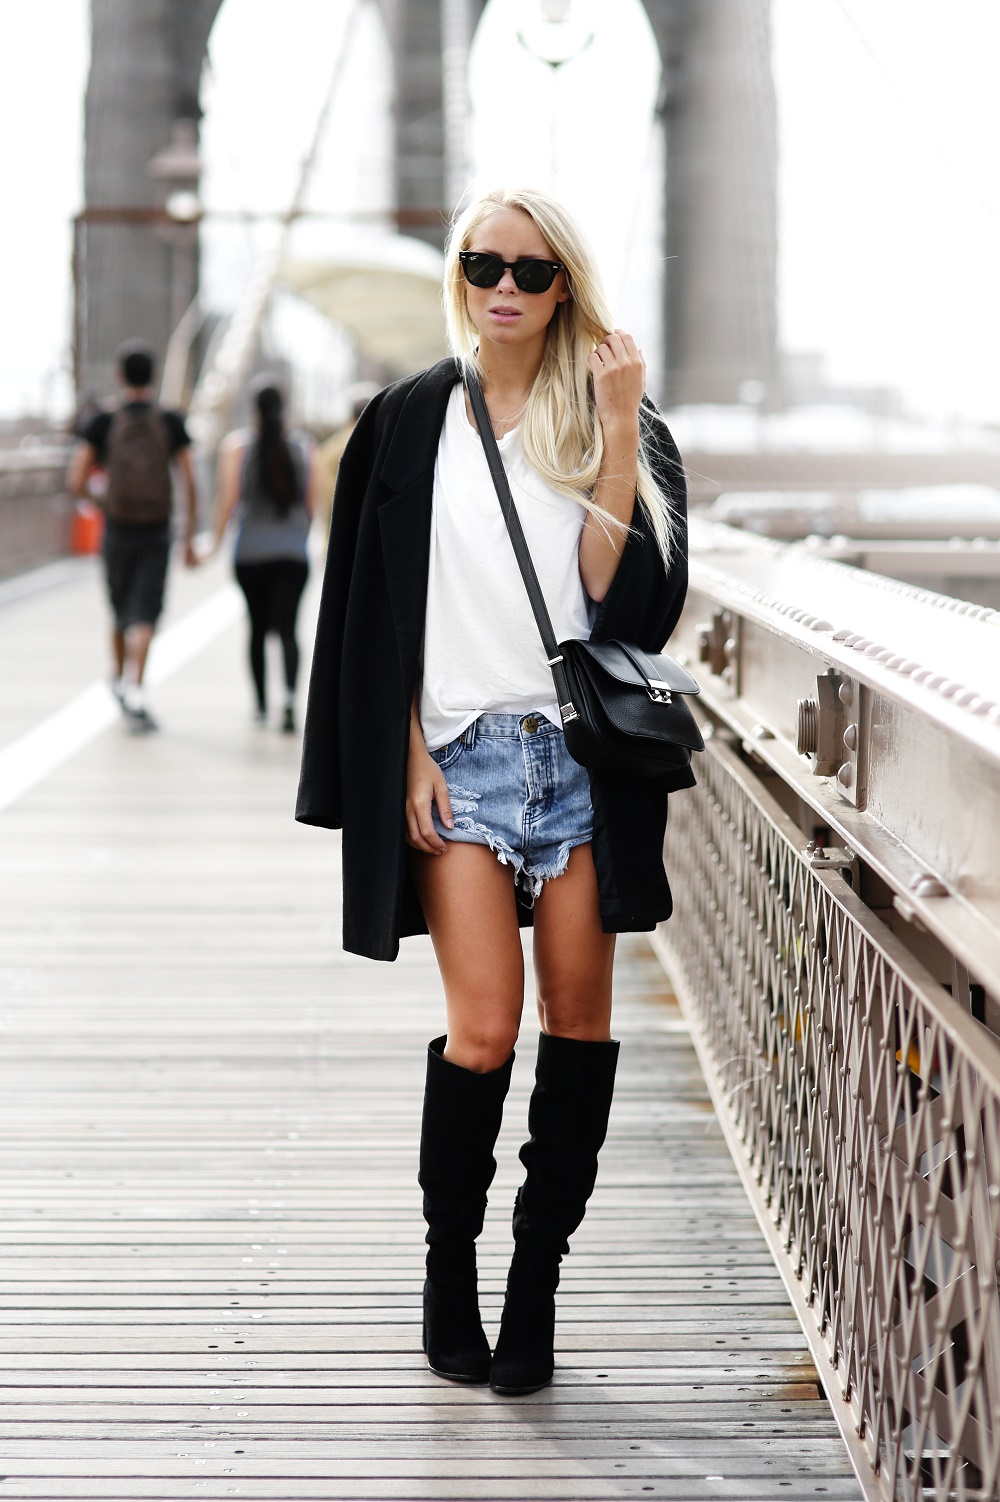 Victoria Tornegren is wearing shoes from Zara, shorts from One Teaspoon, coat from Cubus, T-shirt from Gina Tricot, bag from Mango and sunglasses from Ray Ban